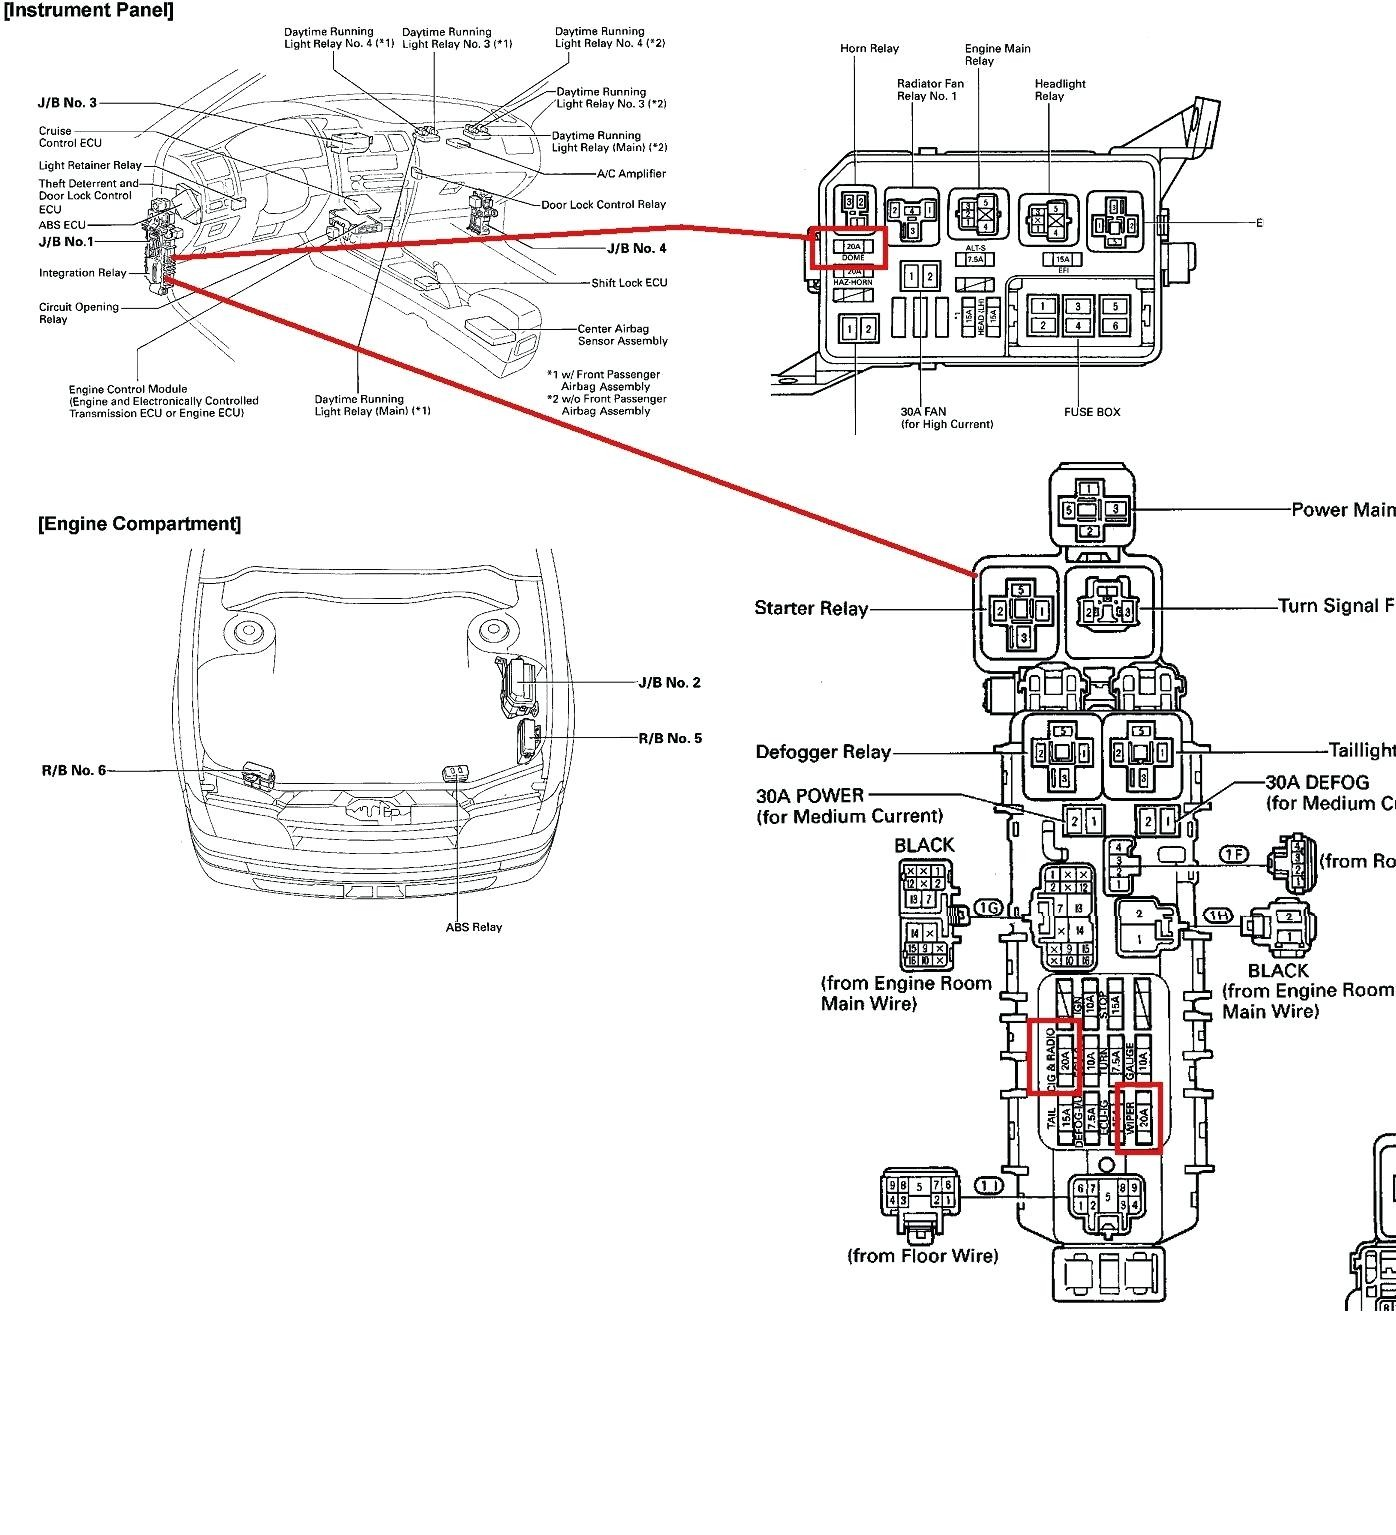 Disc Brake System Diagram September 2017 Archives 23 Club Car Carburetor Diagram Of Disc Brake System Diagram